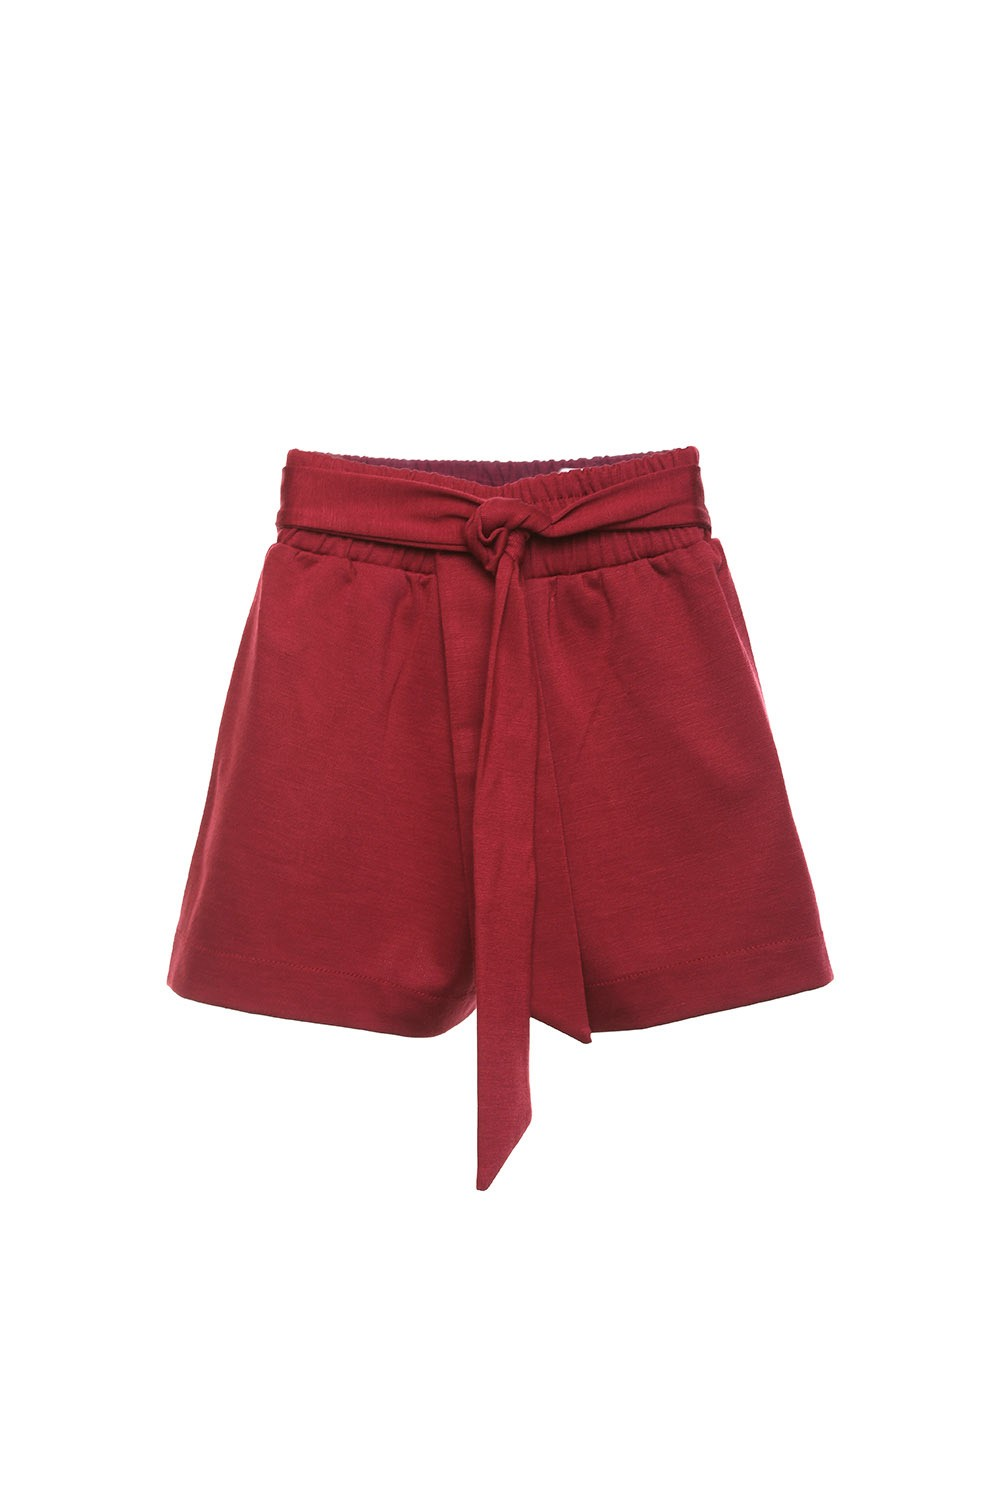 SHORTS RED WOOD KIDS I21